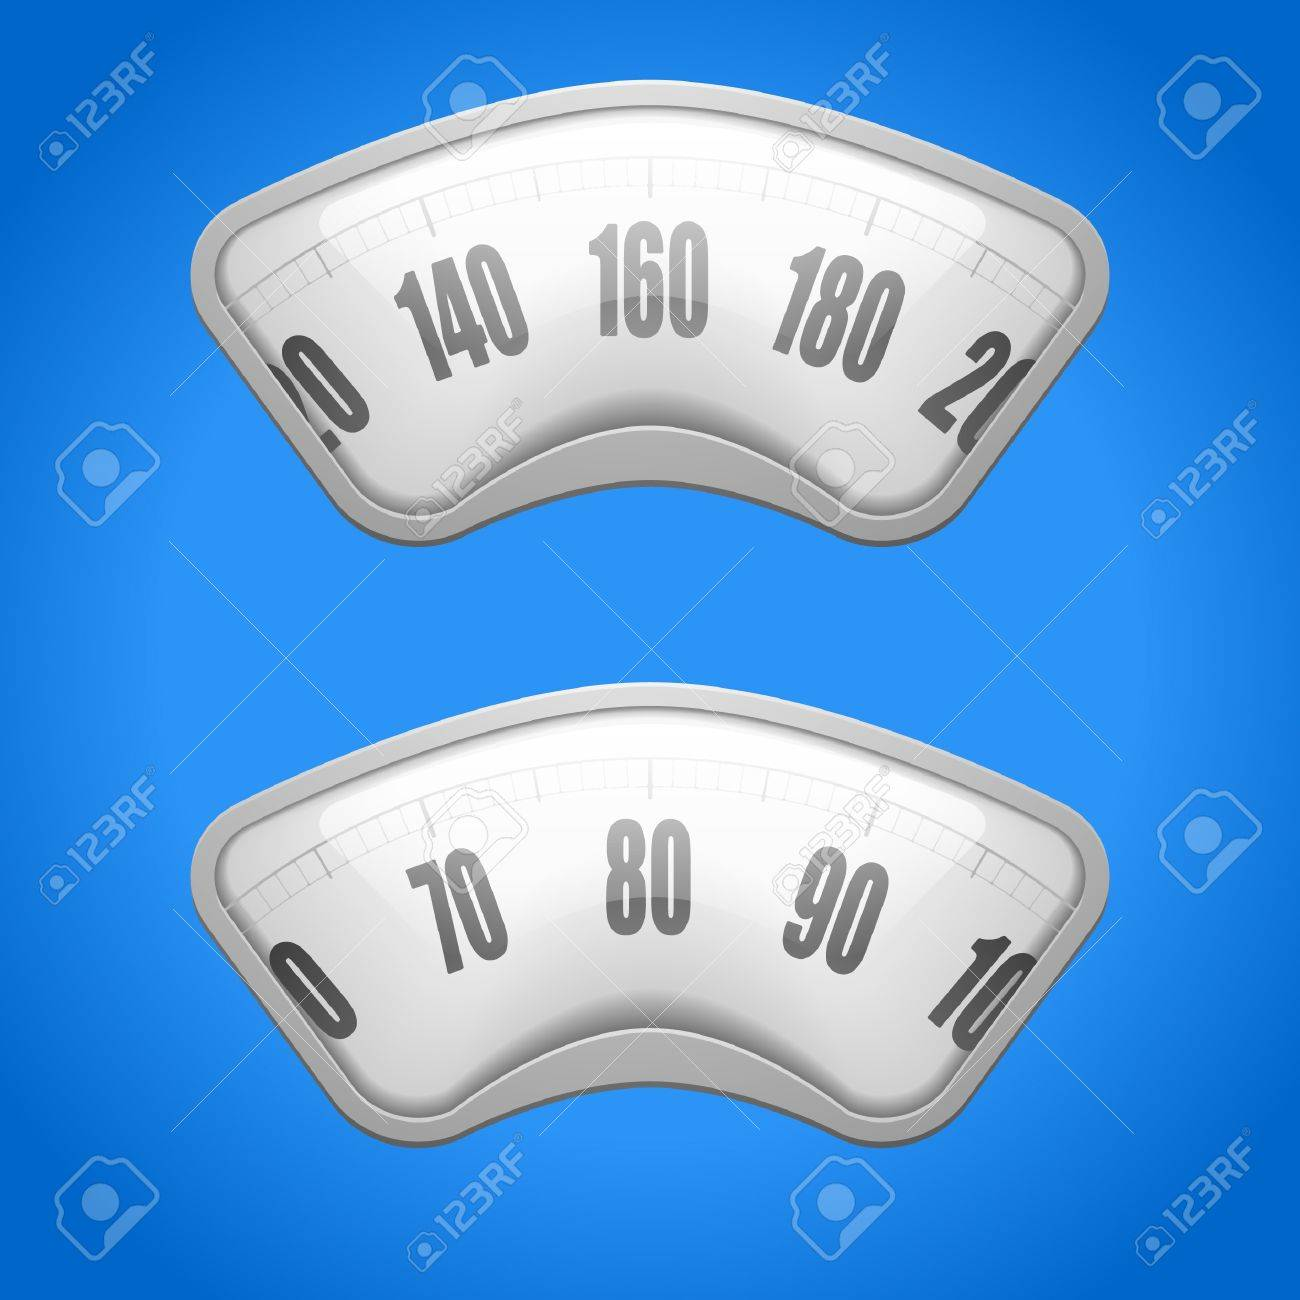 detailed illustration of weighing scales on a blue background Stock Vector - 18689596